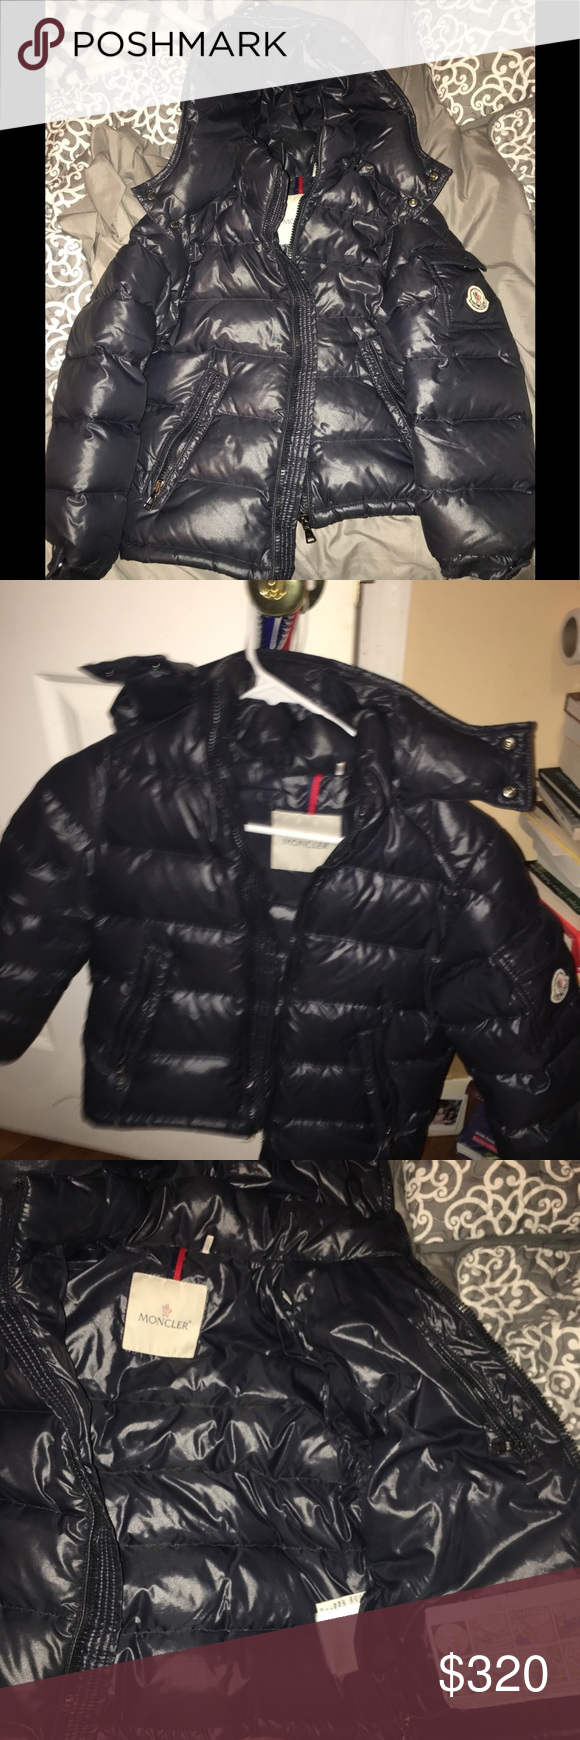 07812ceea Moncler jacket 100% Authentic 100% AUTHENTIC Moncler kids' puffer jacket.  If you